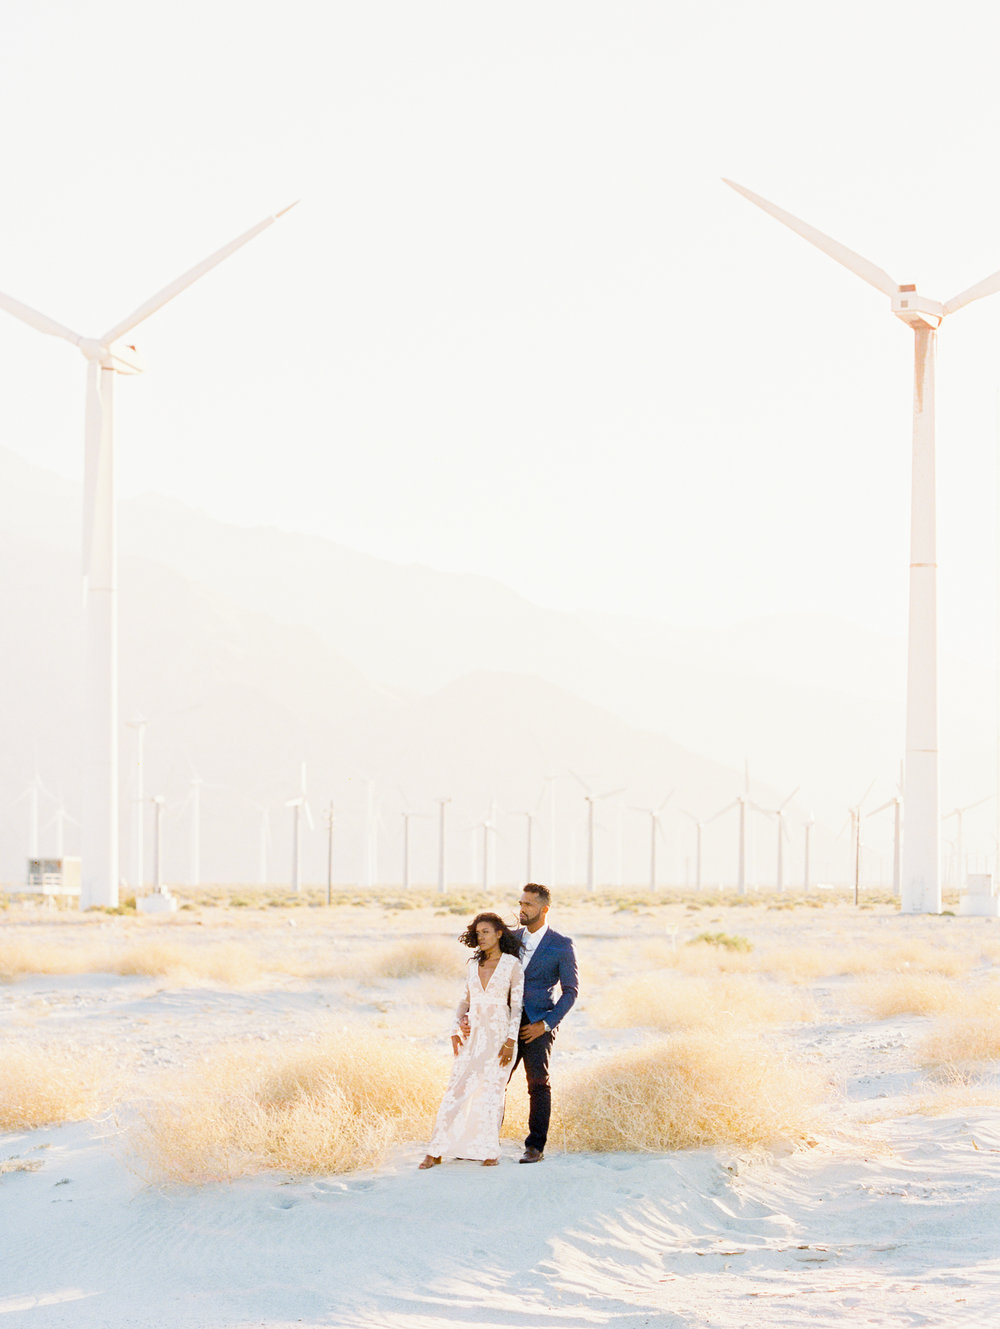 dennisroycoronel_essencecharles_palmsprings_engagement-45.jpg